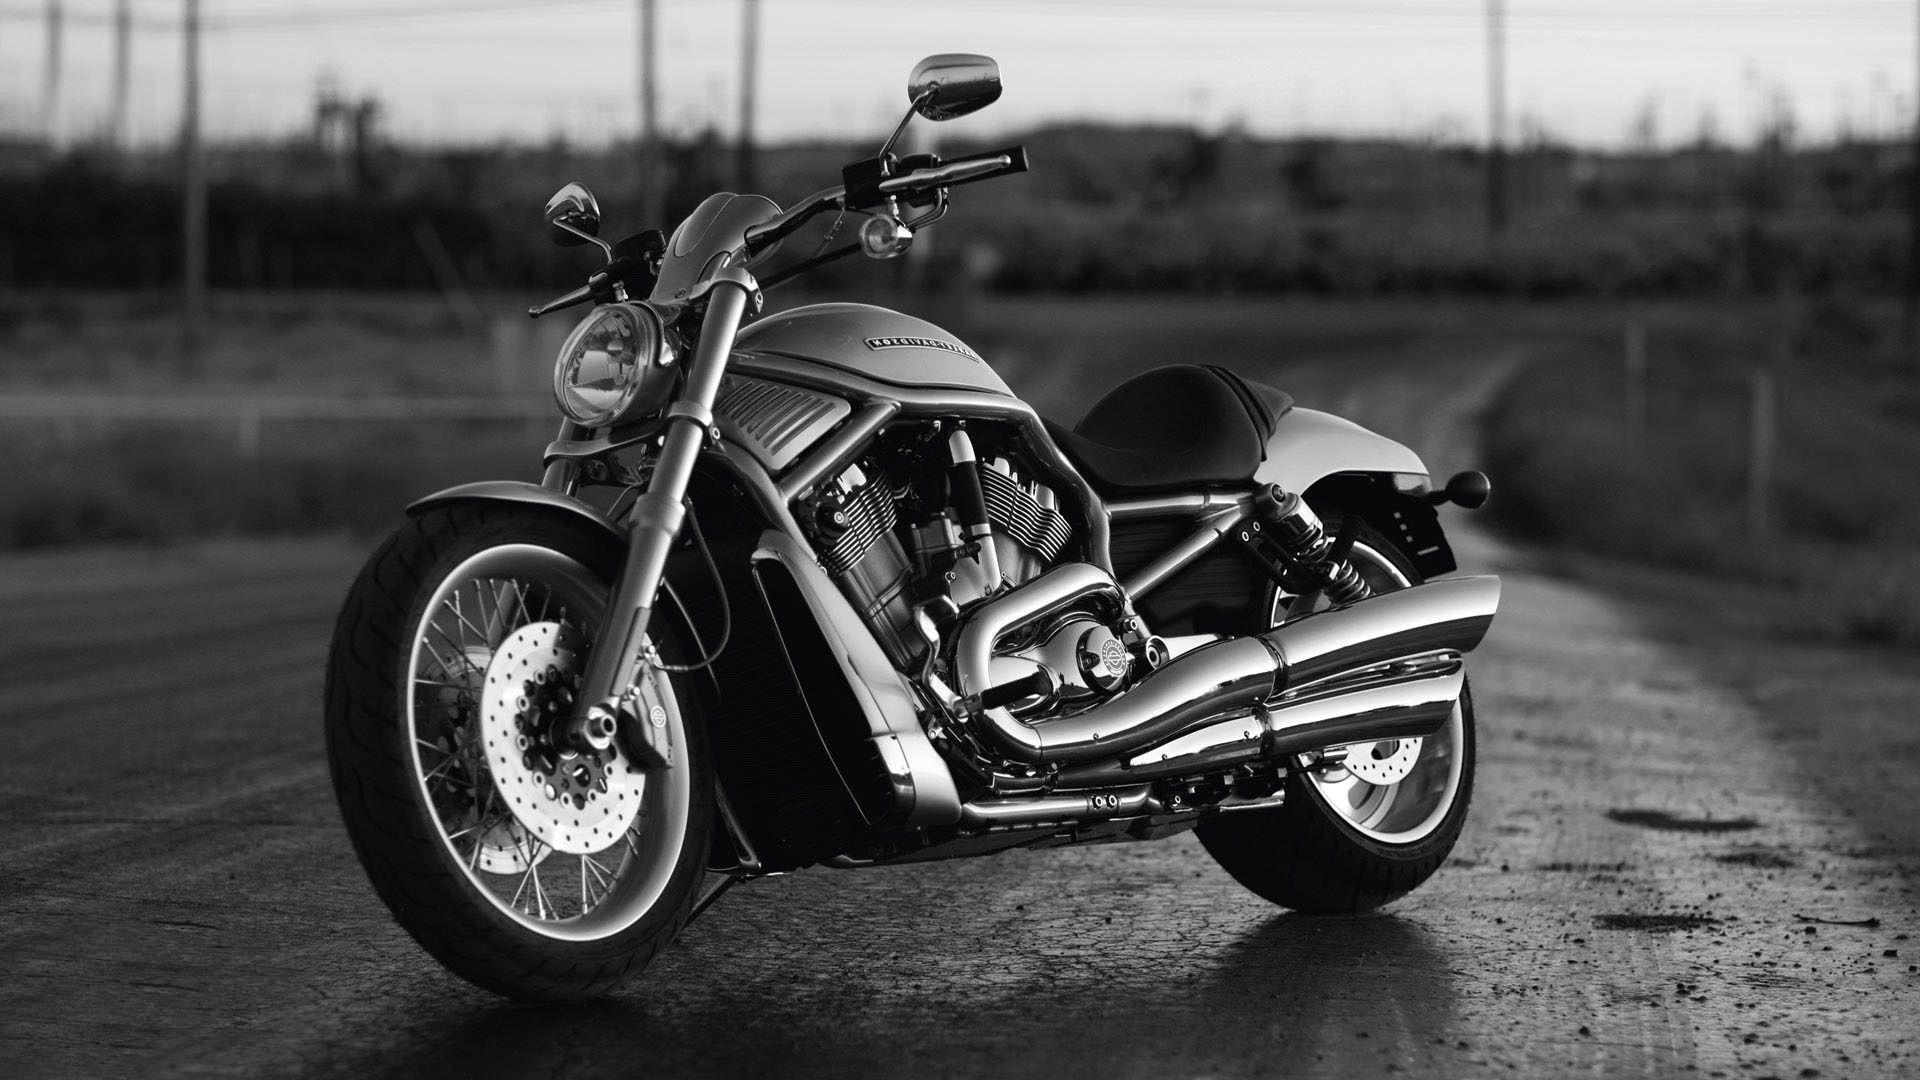 Harley Davidson VRSCF Black Wallpaper HD #12113 Wallpaper ...